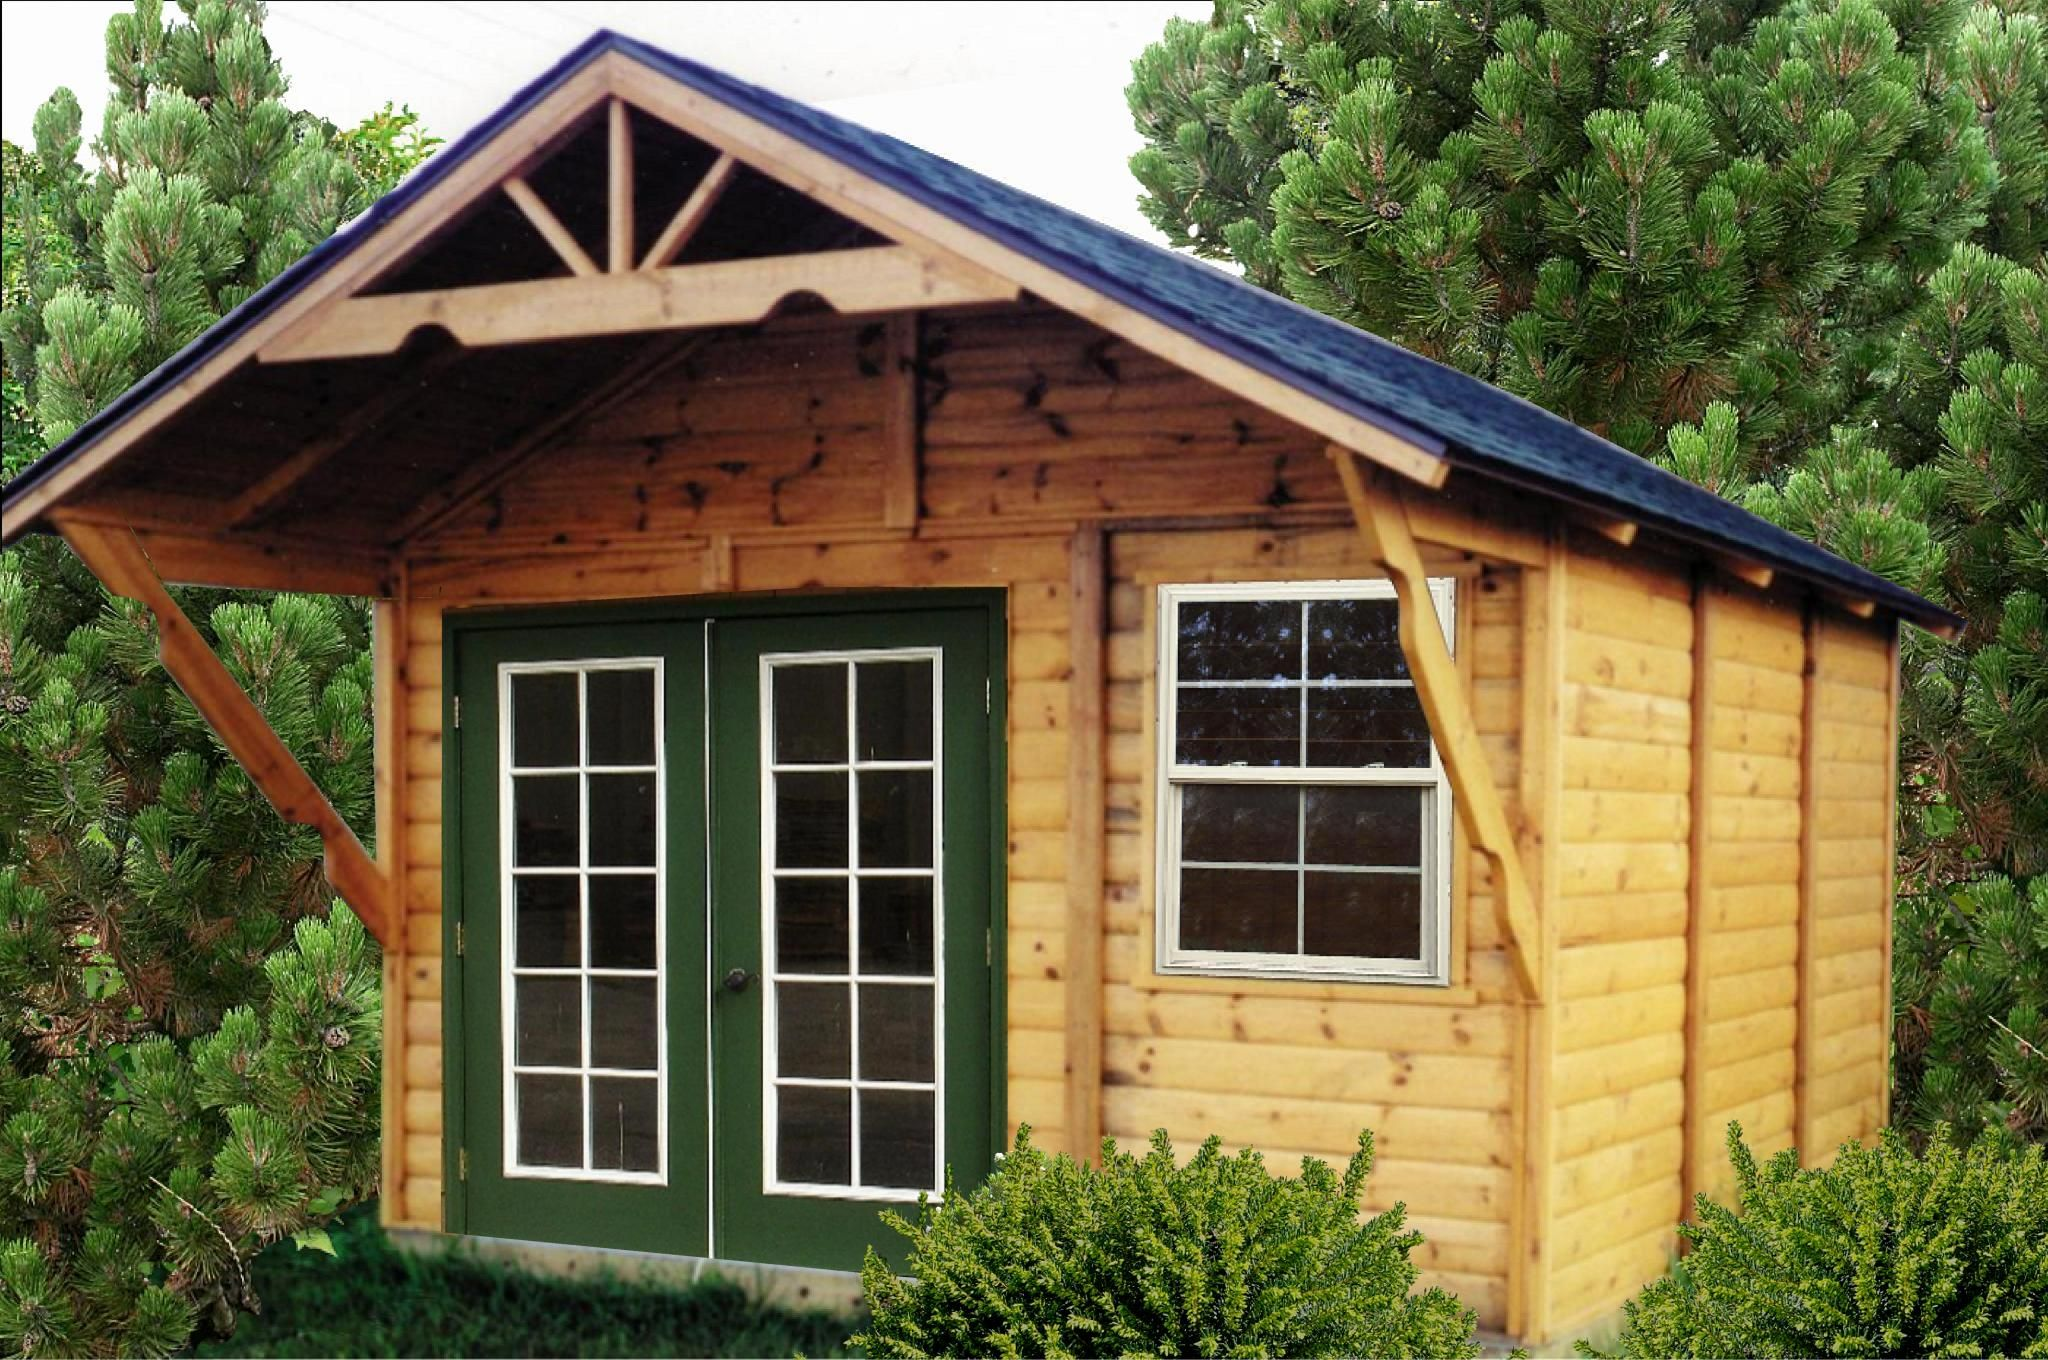 Garden shed ideas wooden storage shed plans home Tiny house in backyard